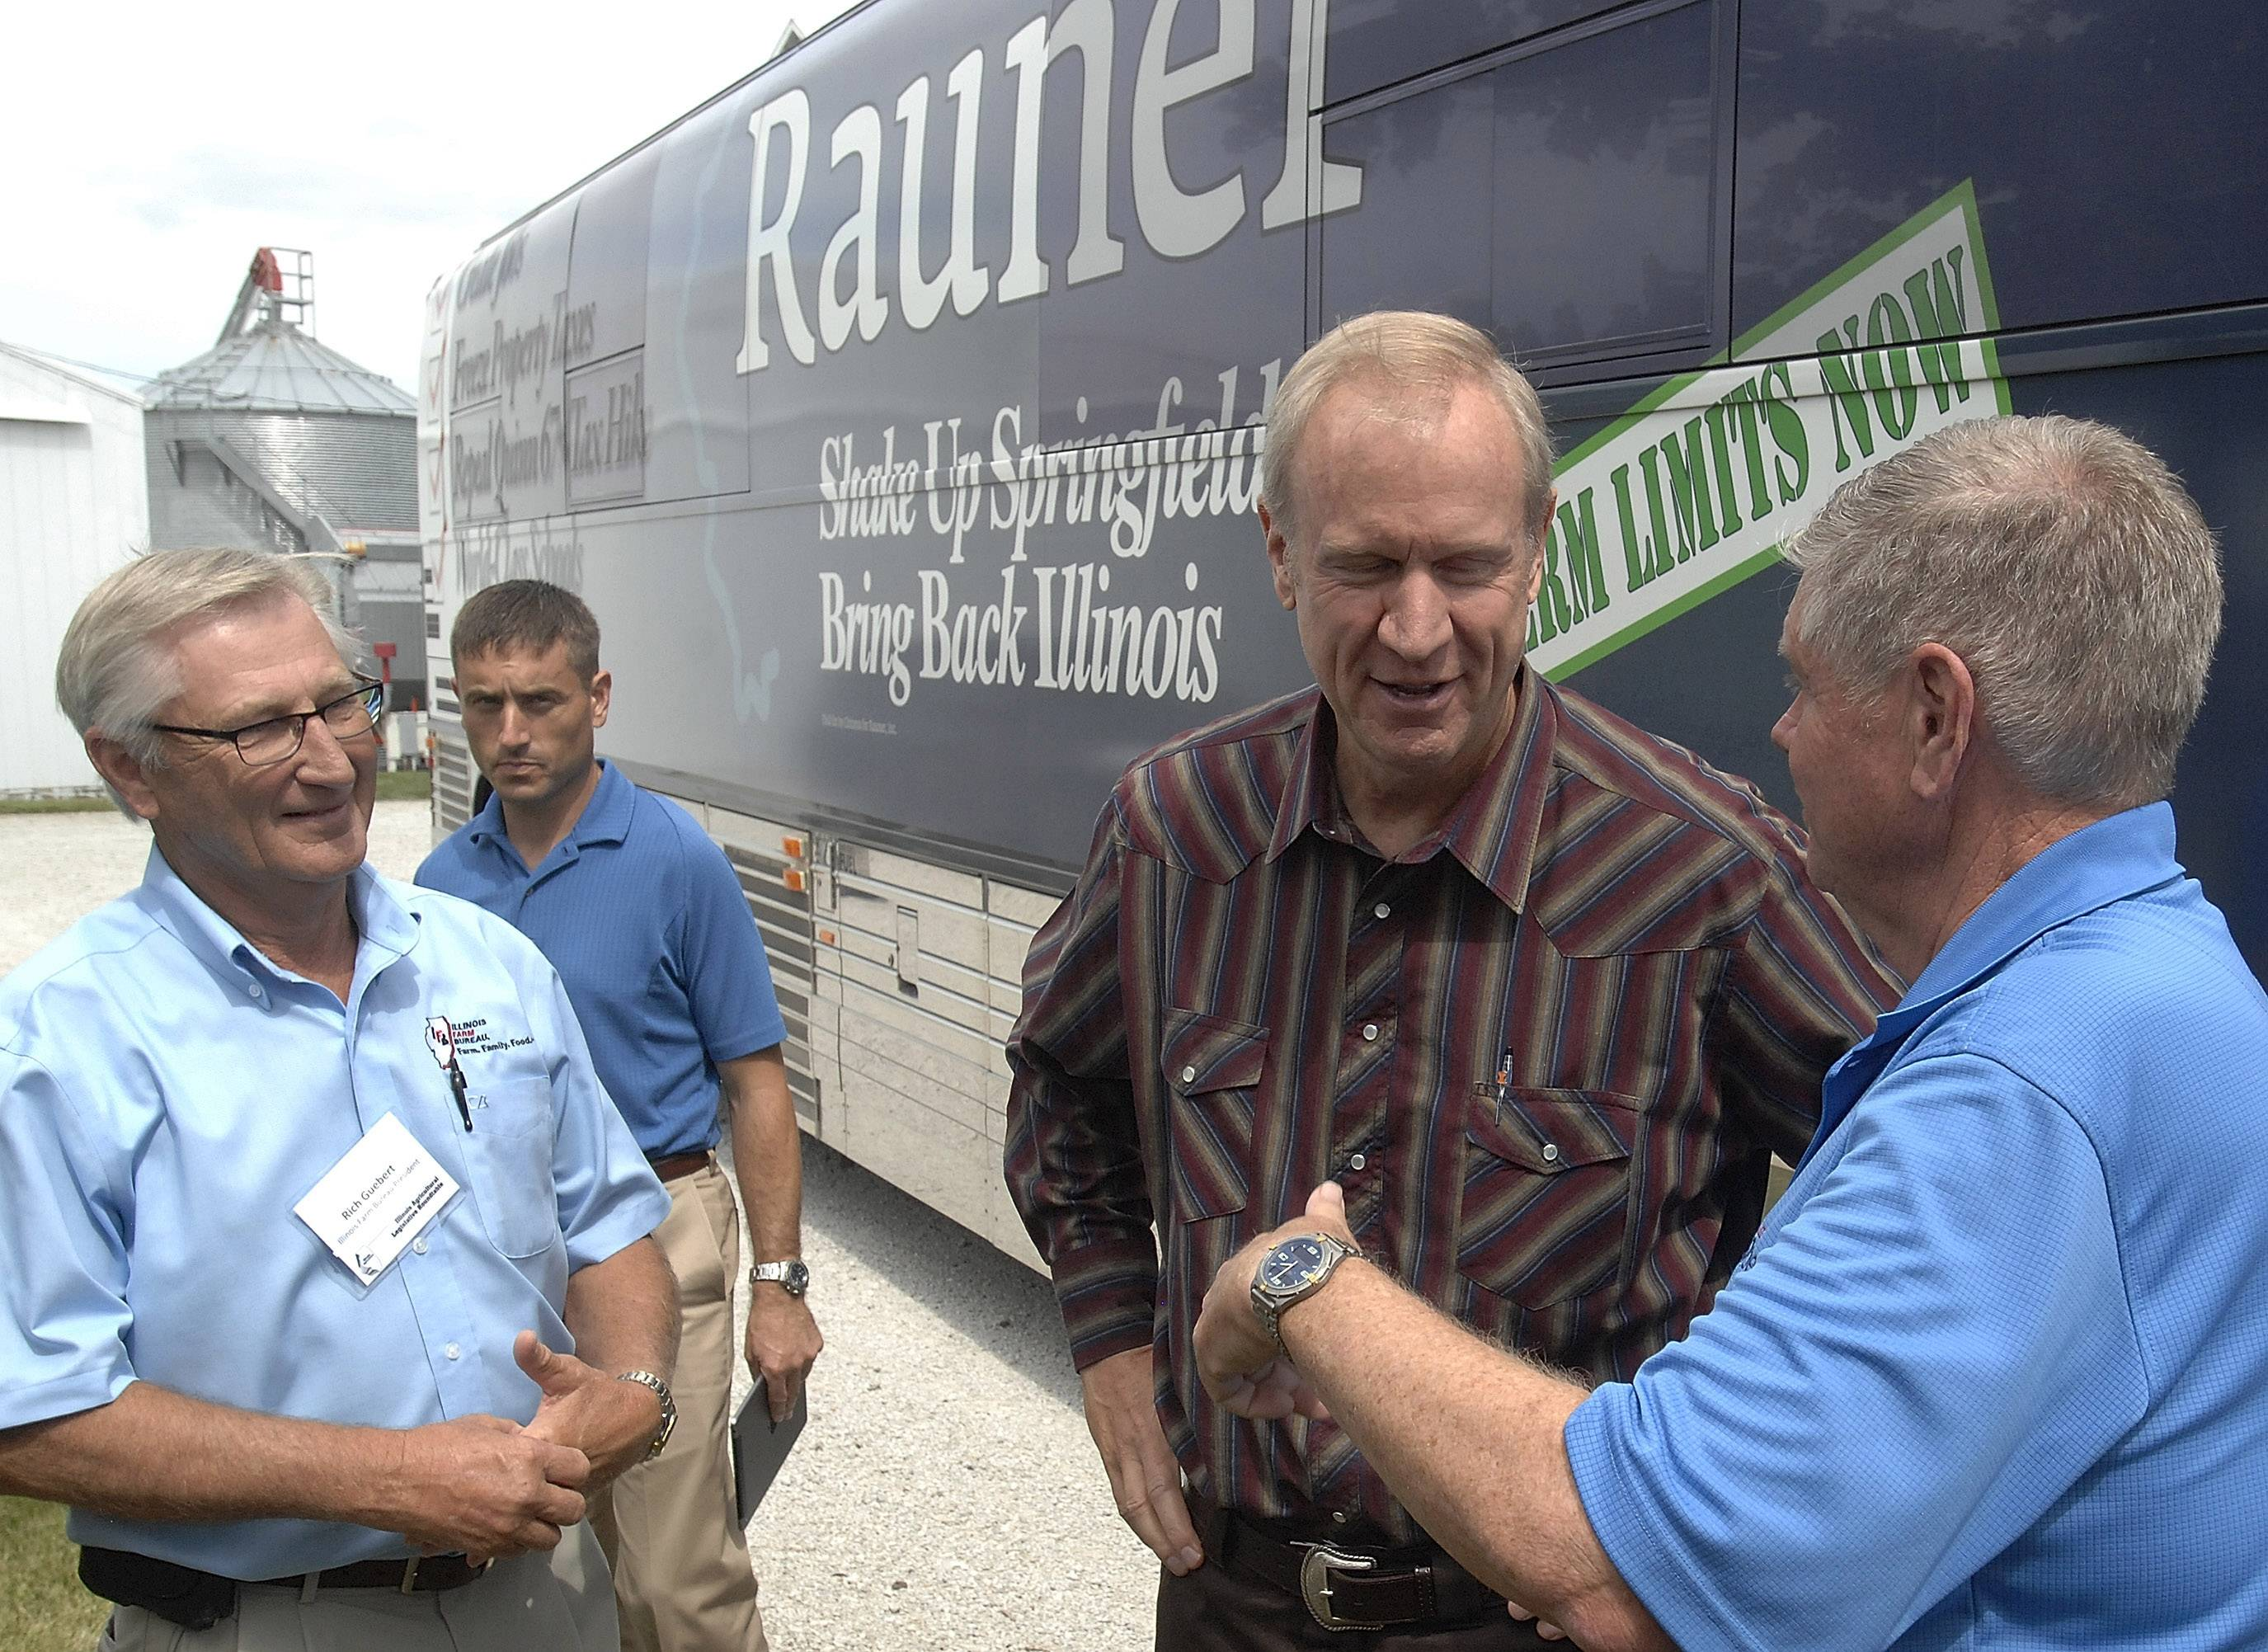 Gubernatorial candidate Bruce Rauner is greeted by state Sen. Jim Oberweis, right, candidate for the U.S. Senate, and Illinois Farm Bureau President Rich Guebert, left, as Rauner arrives Wednesday at the Illinois Agricultural Legislative Roundtable forum in Bloomington, Ill.